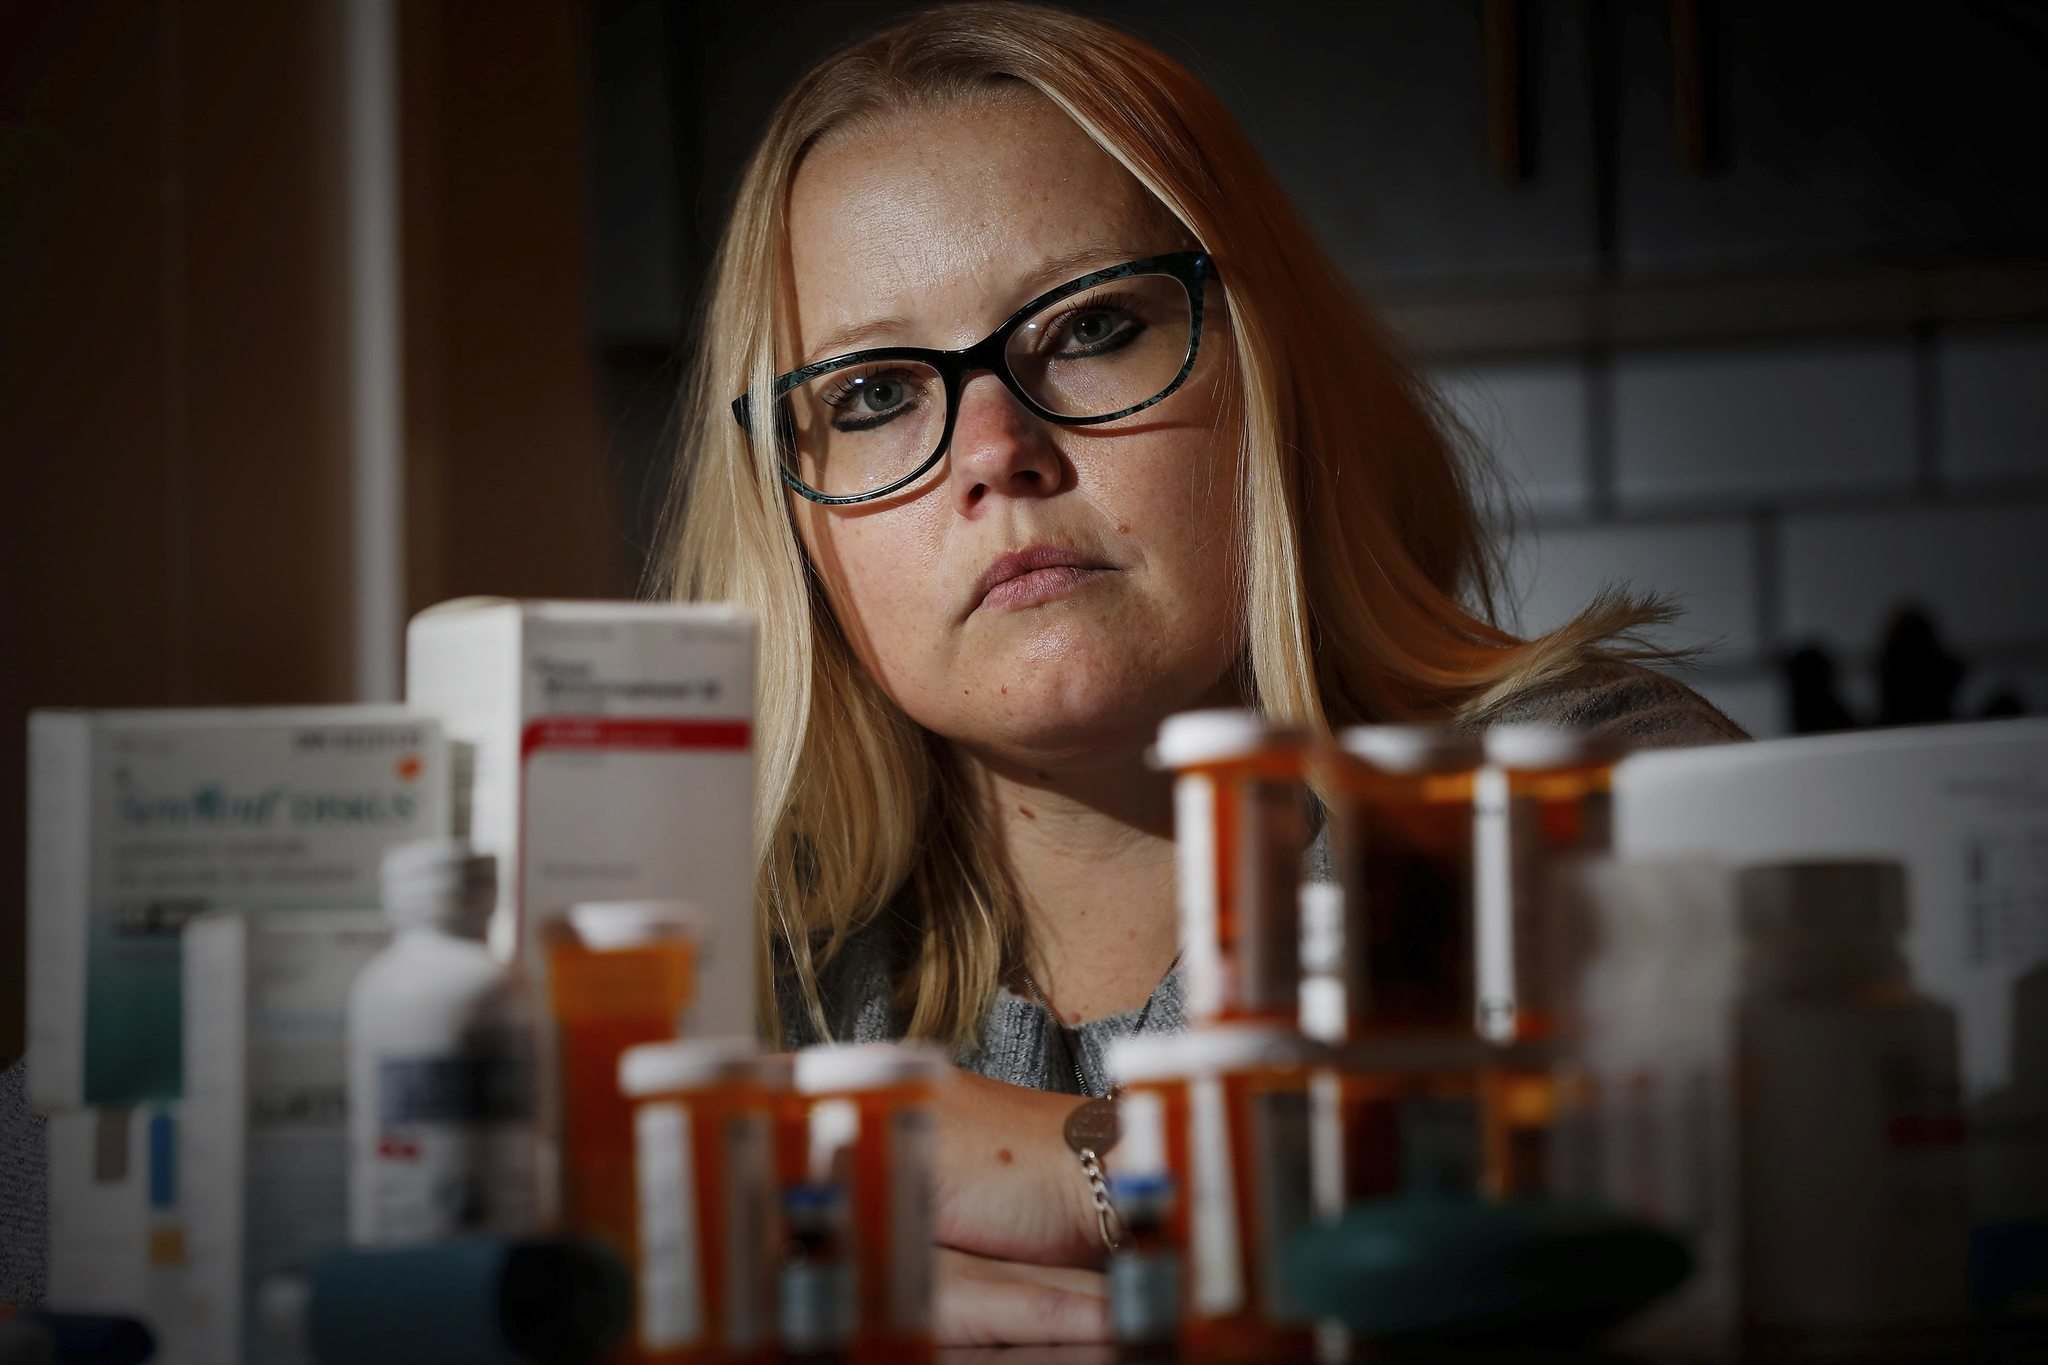 JOHN WOODS / WINNIPEG FREE PRESS</p><p>Tara-Lynn Reeves, who has cystic fibrosis, is seen at her home with the medication she takes on a daily basis. She thinks the province's decision will cost her about $7,000 a year.</p>